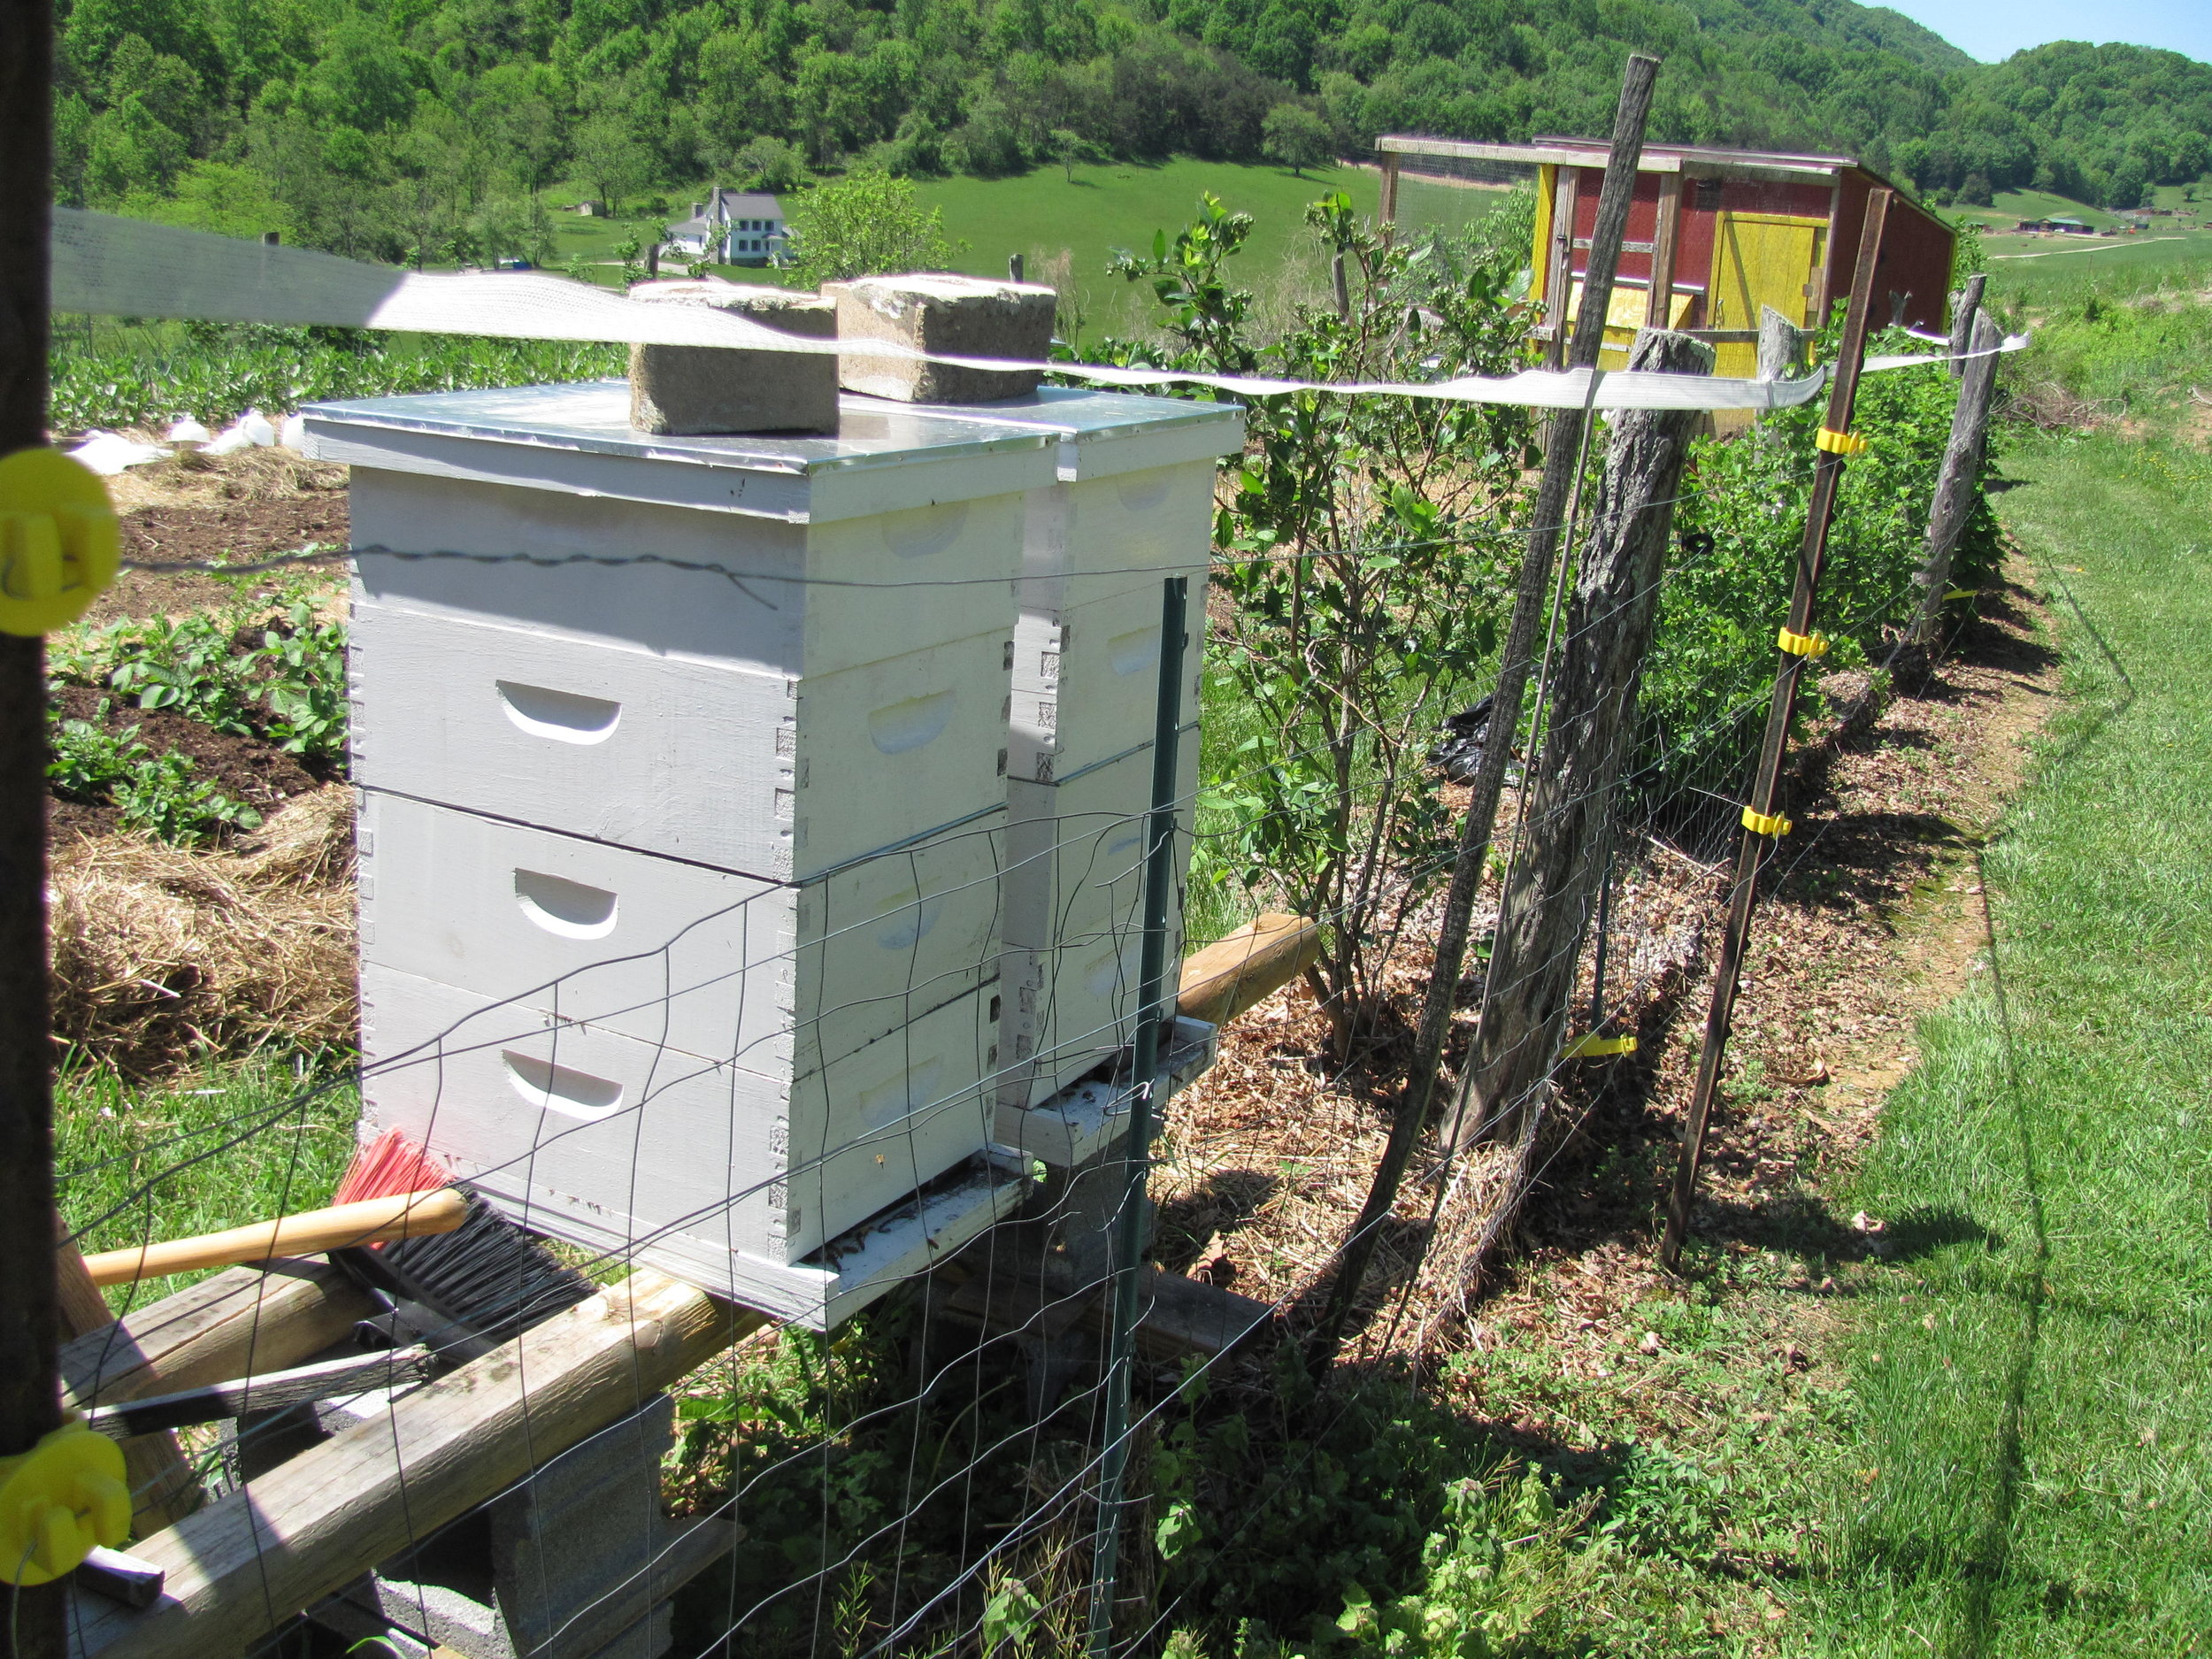 Two of the hives on the edge the garden